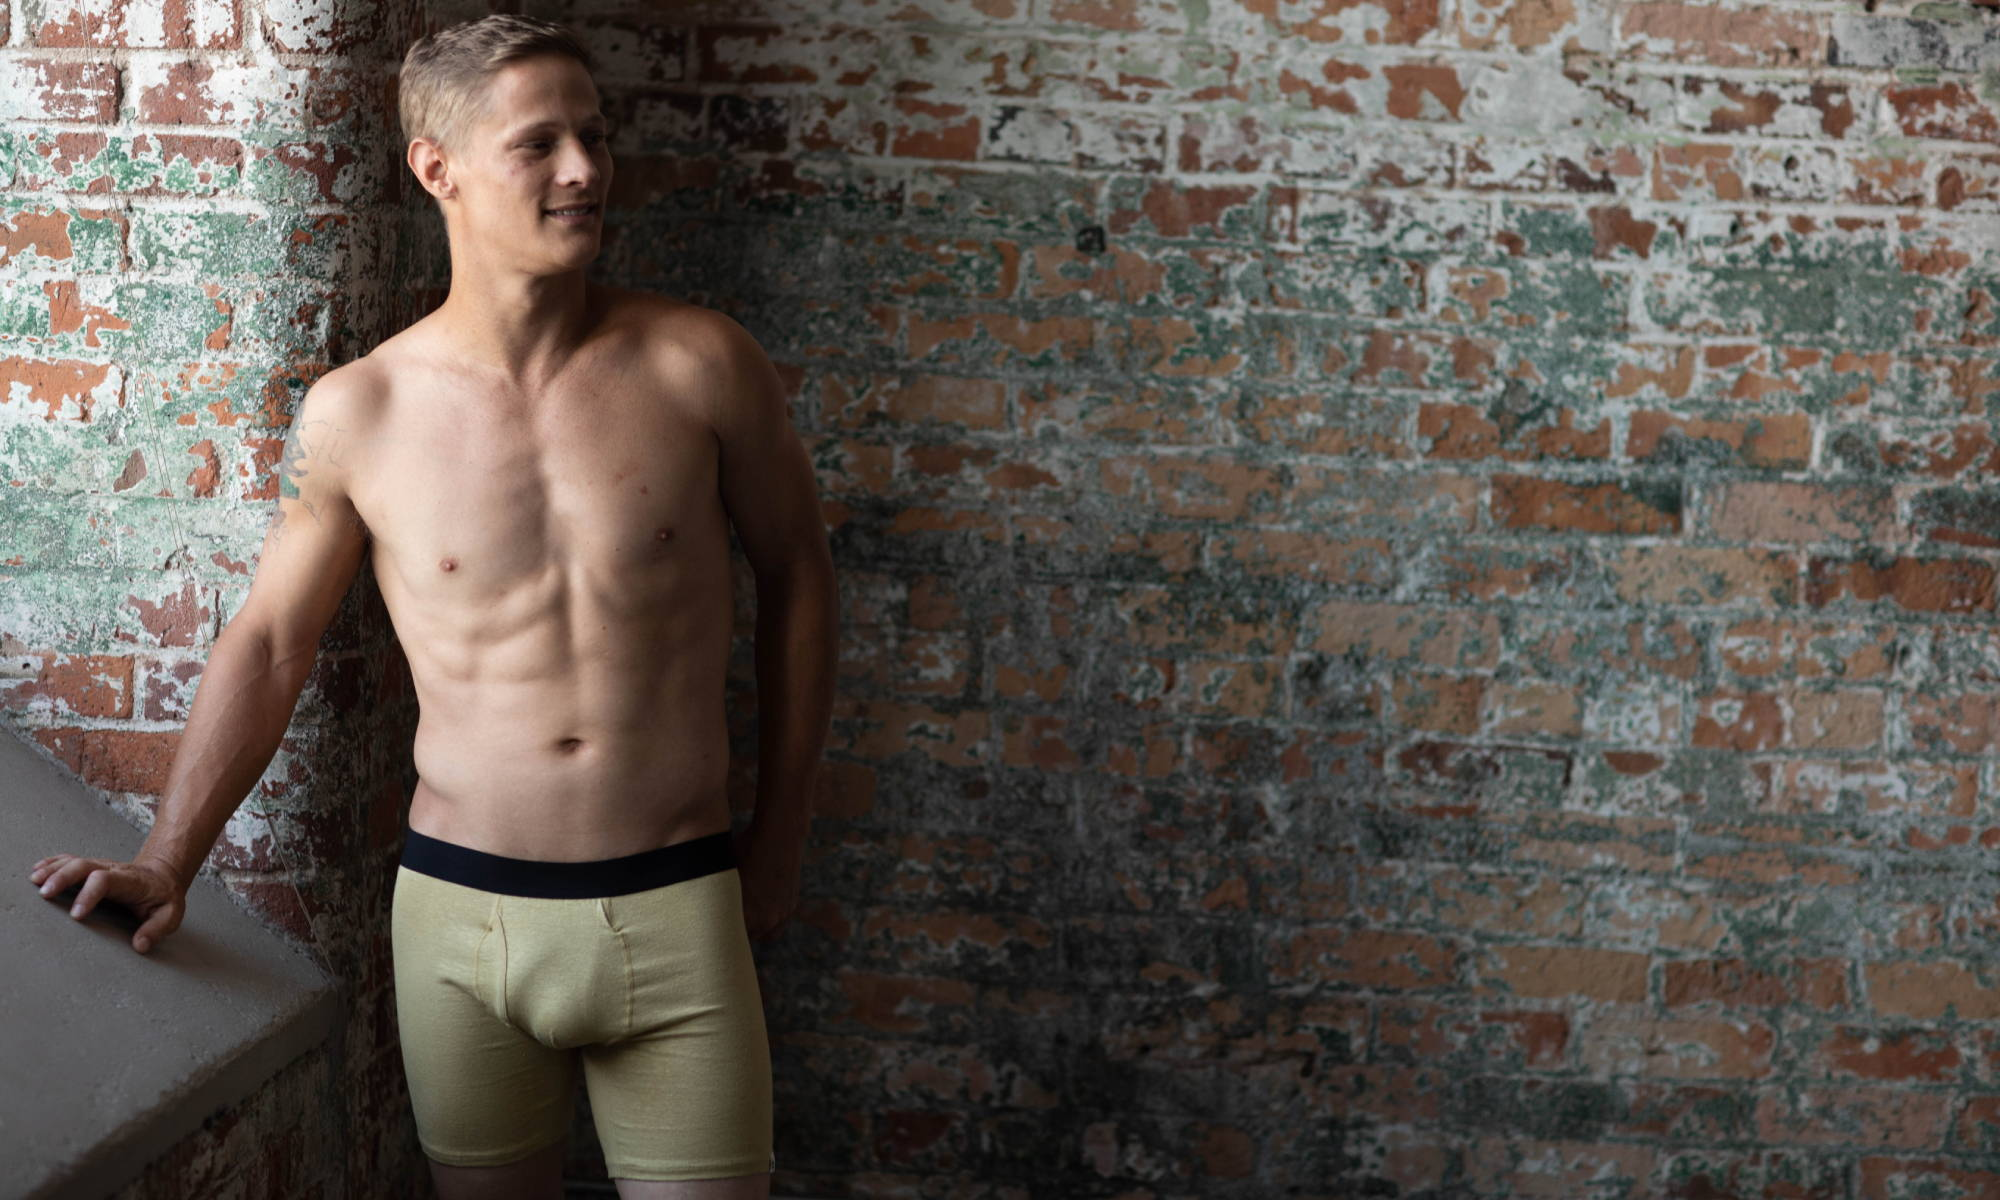 A man stands in front of a brick wall next to a window wearing WAMA hemp underwear in natural hemp color.